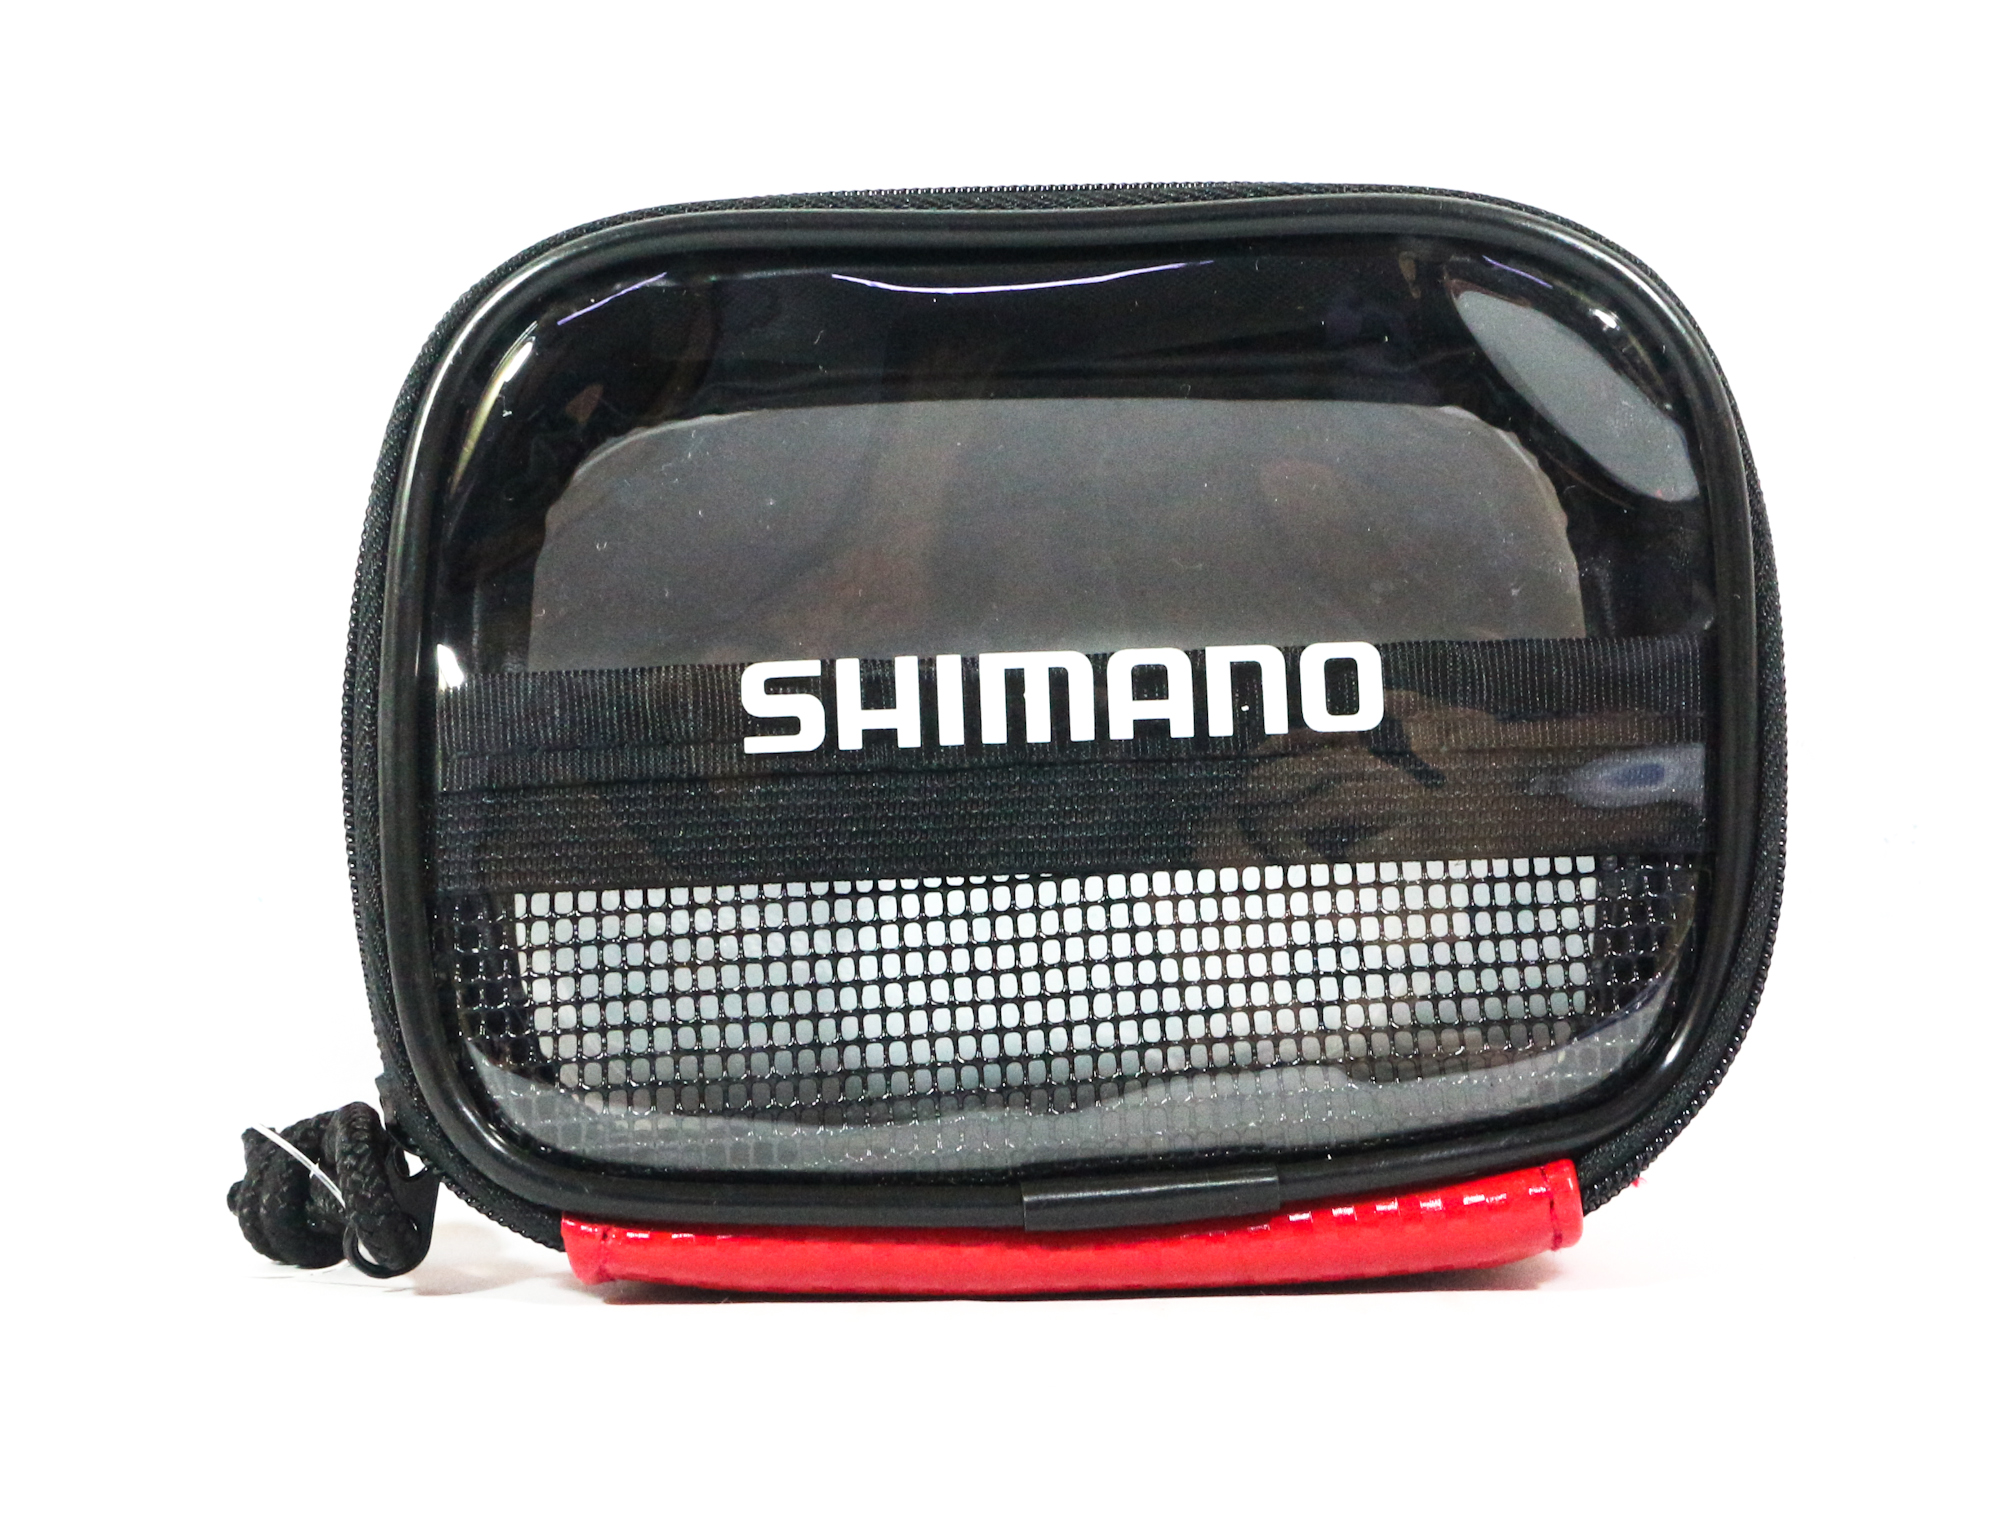 Shimano PC-023I Case Pouch 9 x 125 x 5cm Single Zip Red 718143